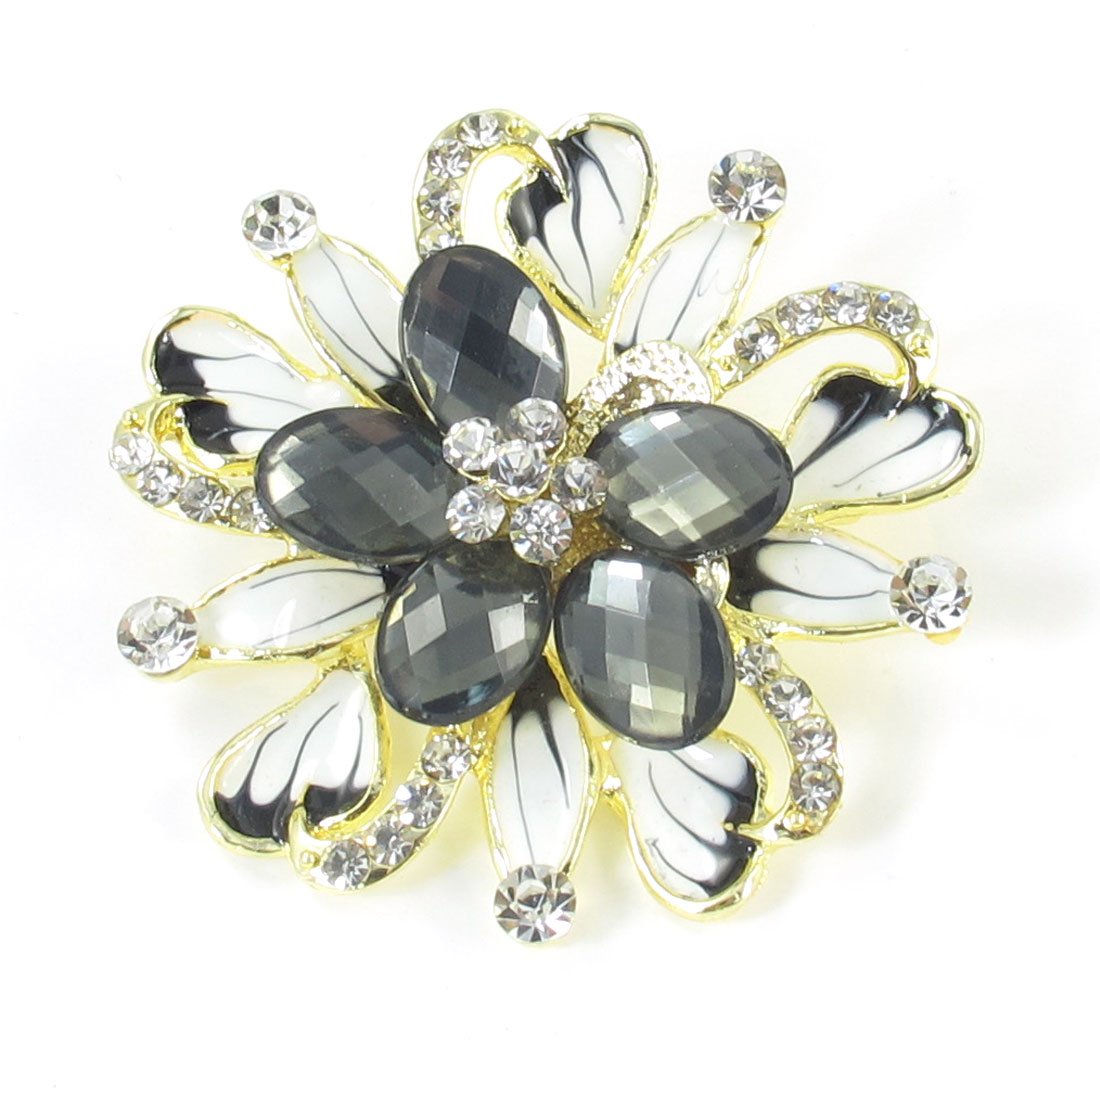 Lady Rhinestones Decor Flower Shaped Metal Safety Pin Brooch Steel Blue White